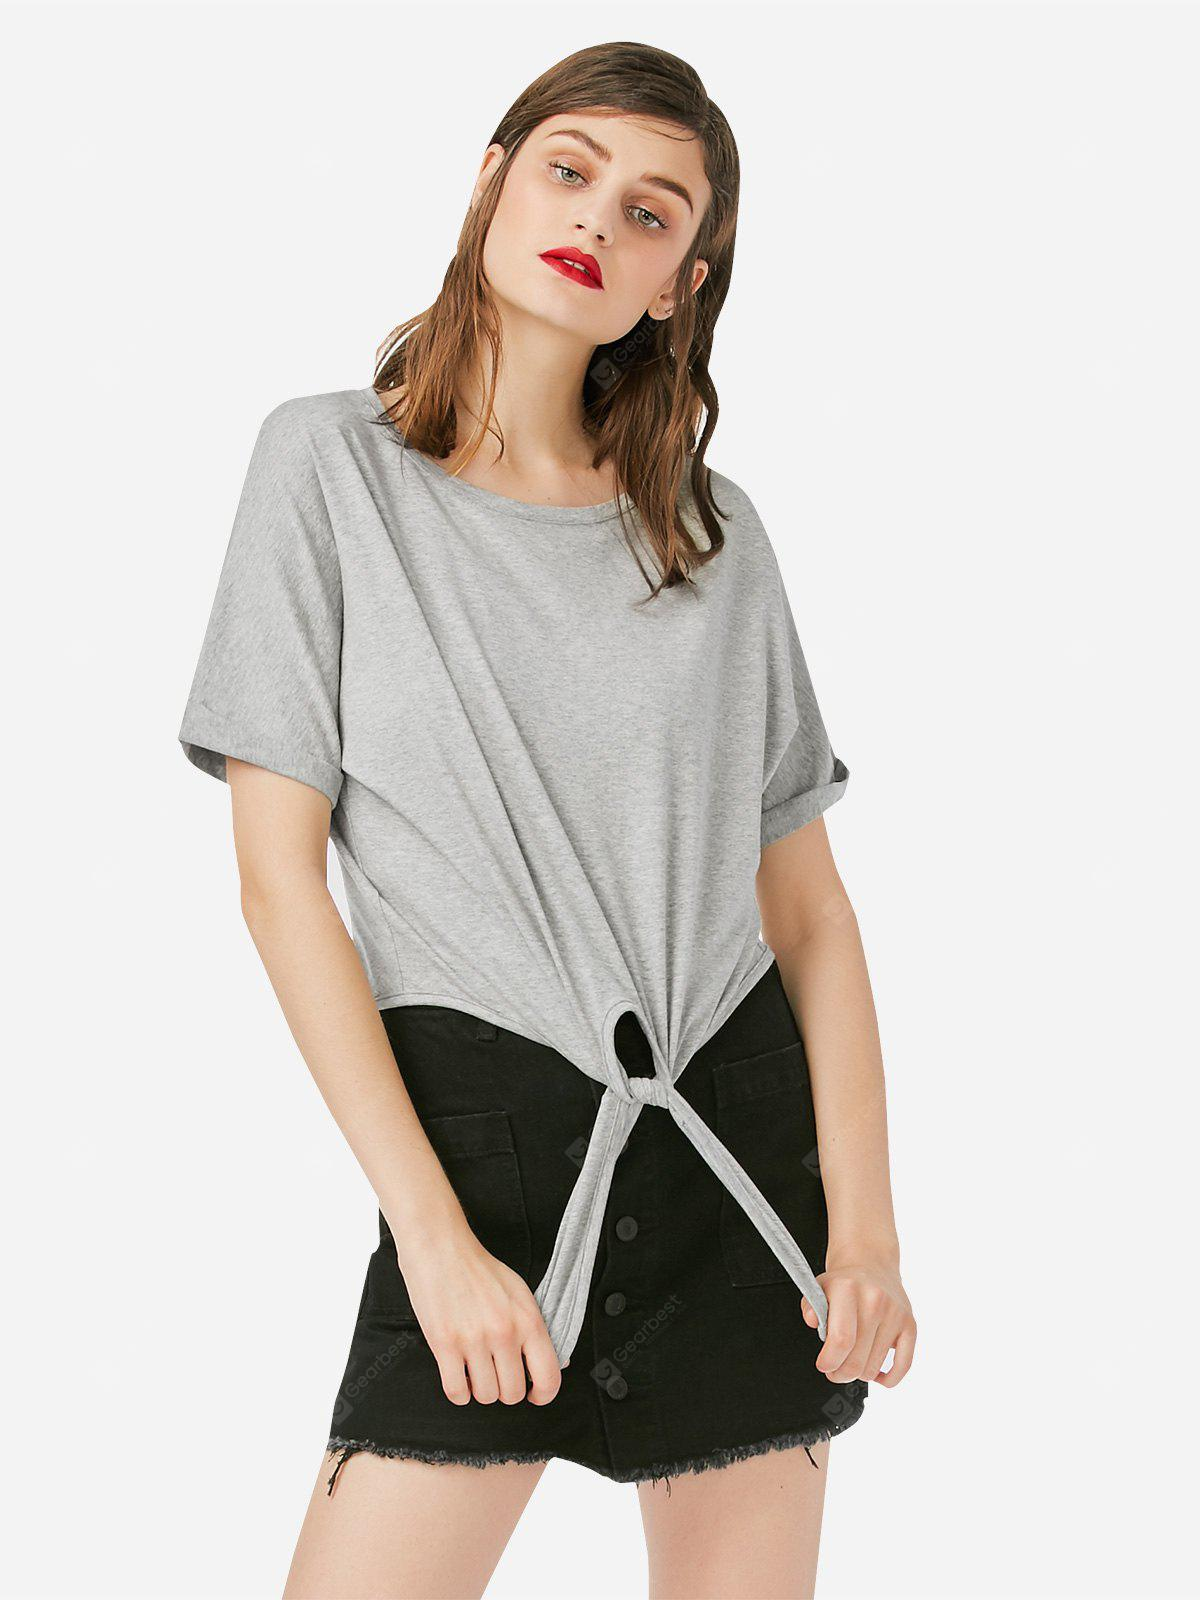 Women Crew Neck Knotted Gray T Shirt